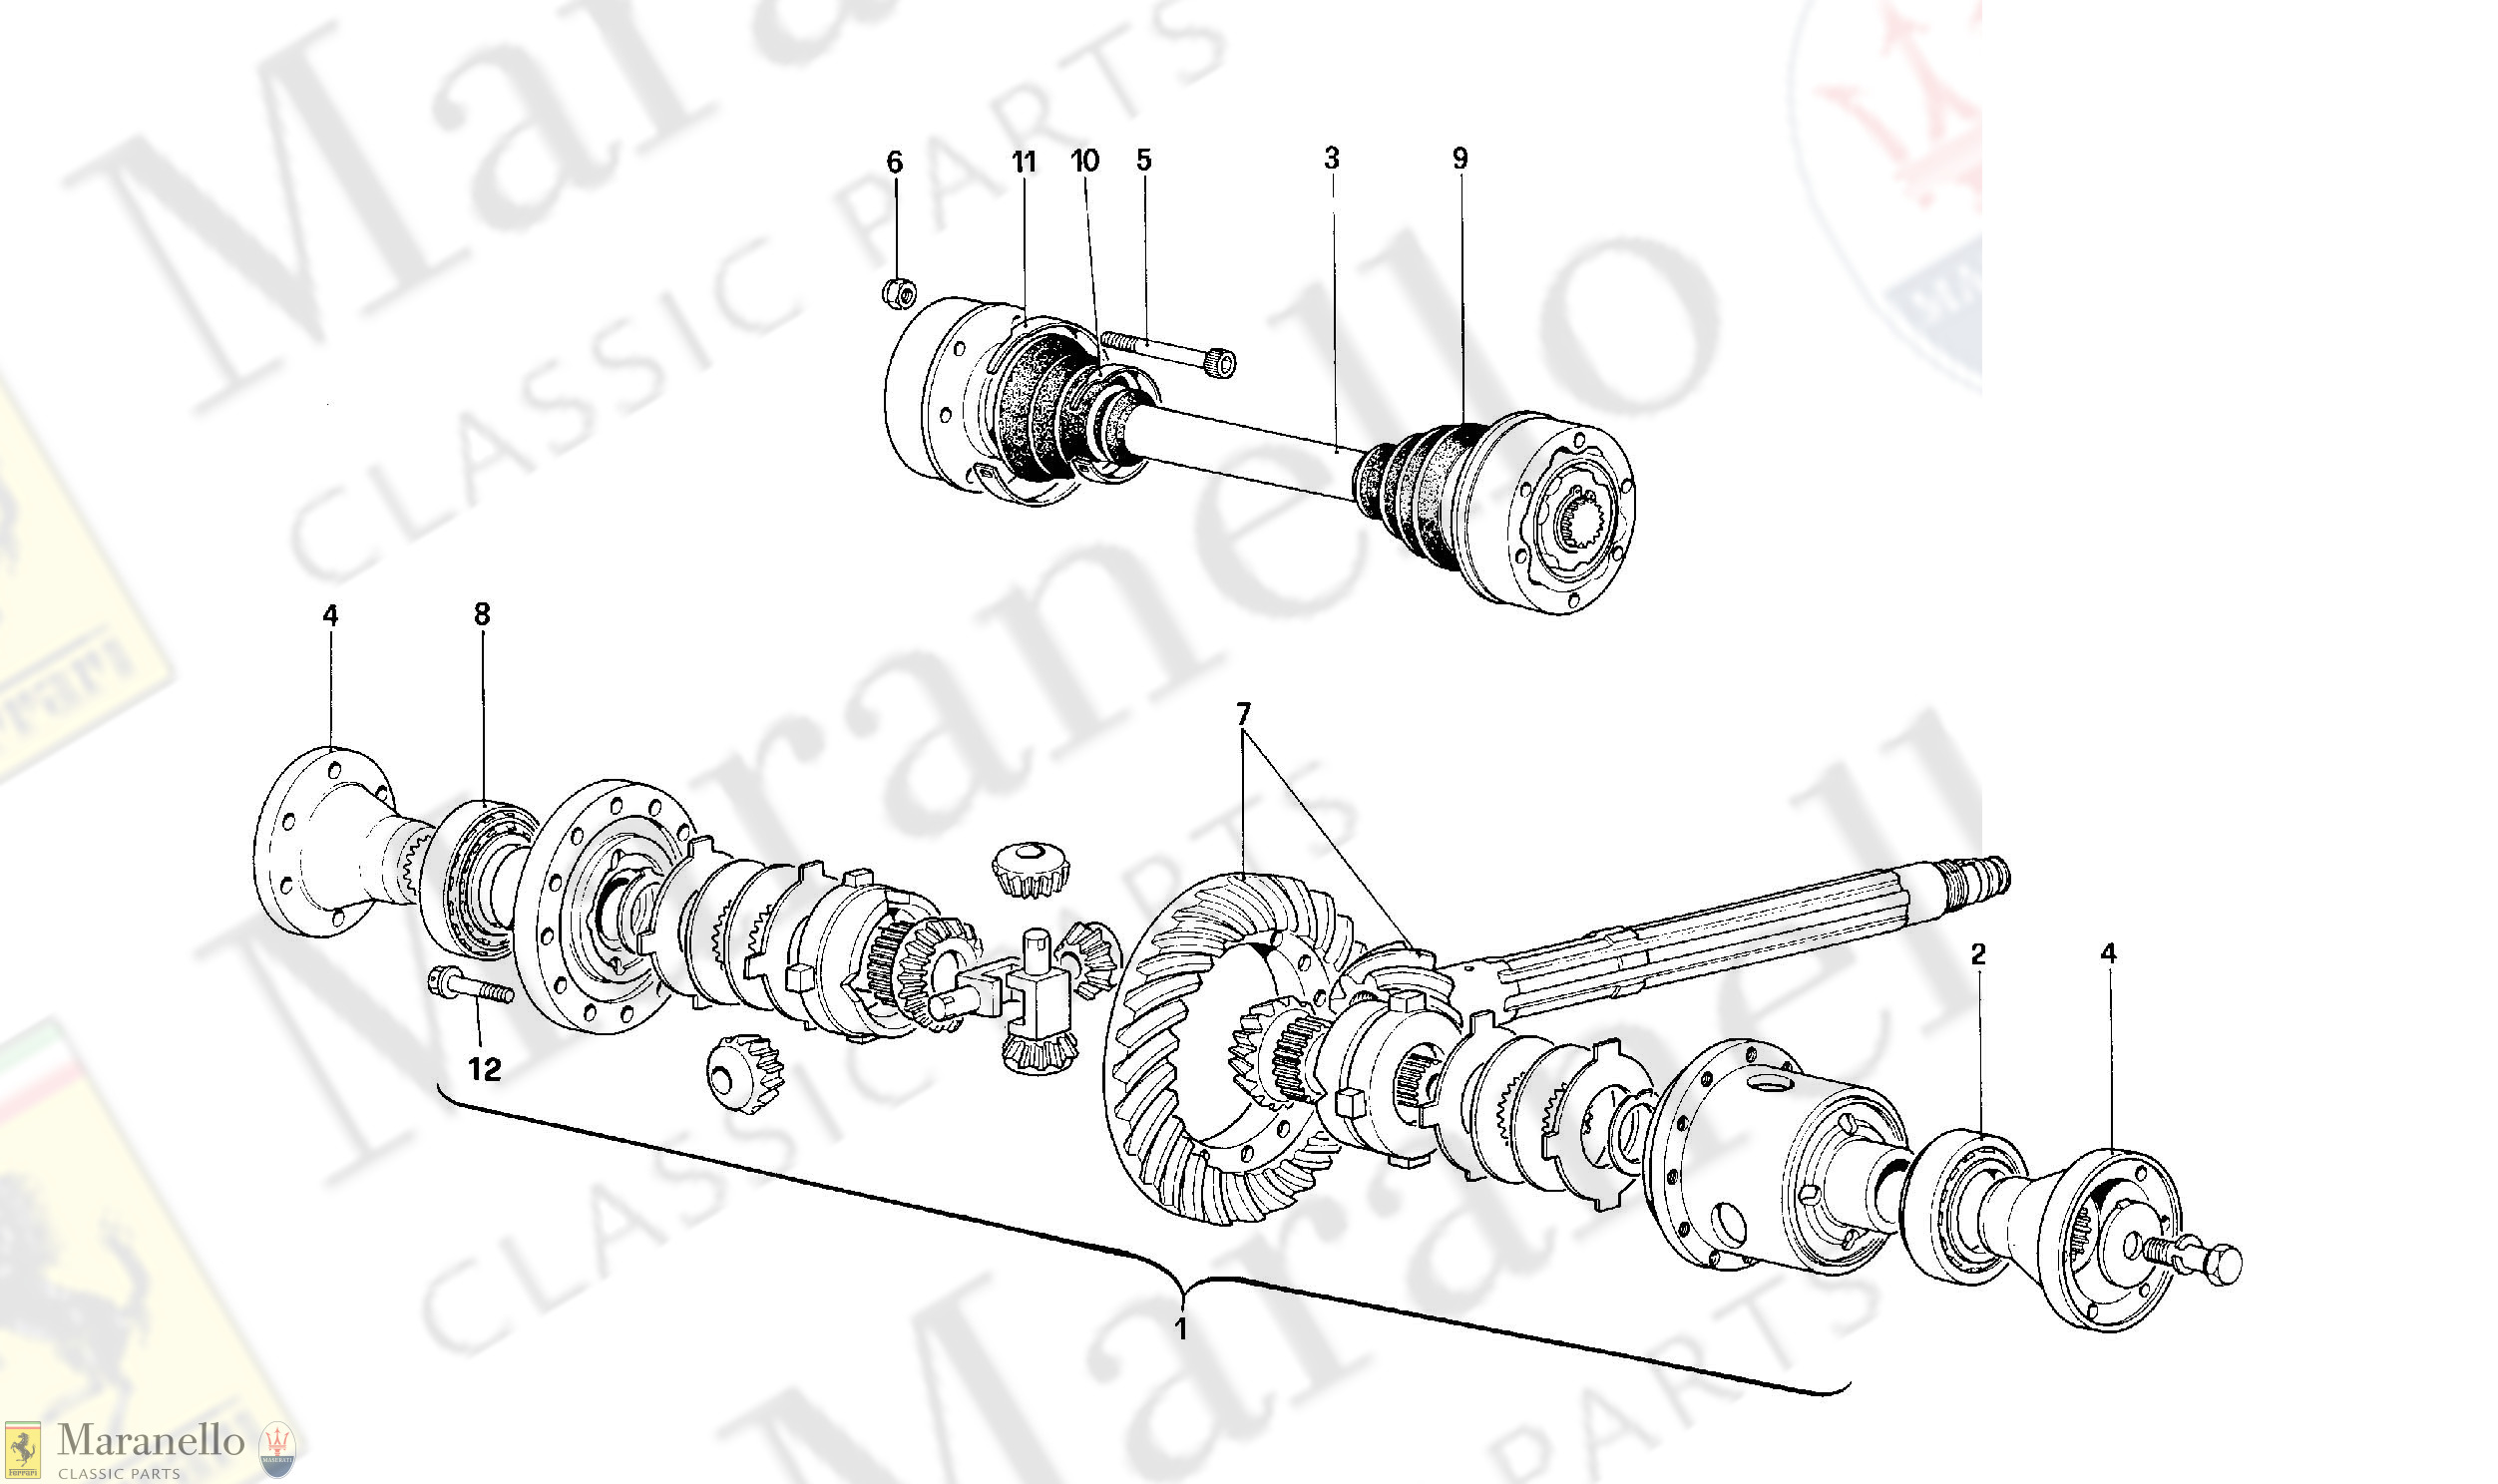 032 - Differential And Axle Shafts